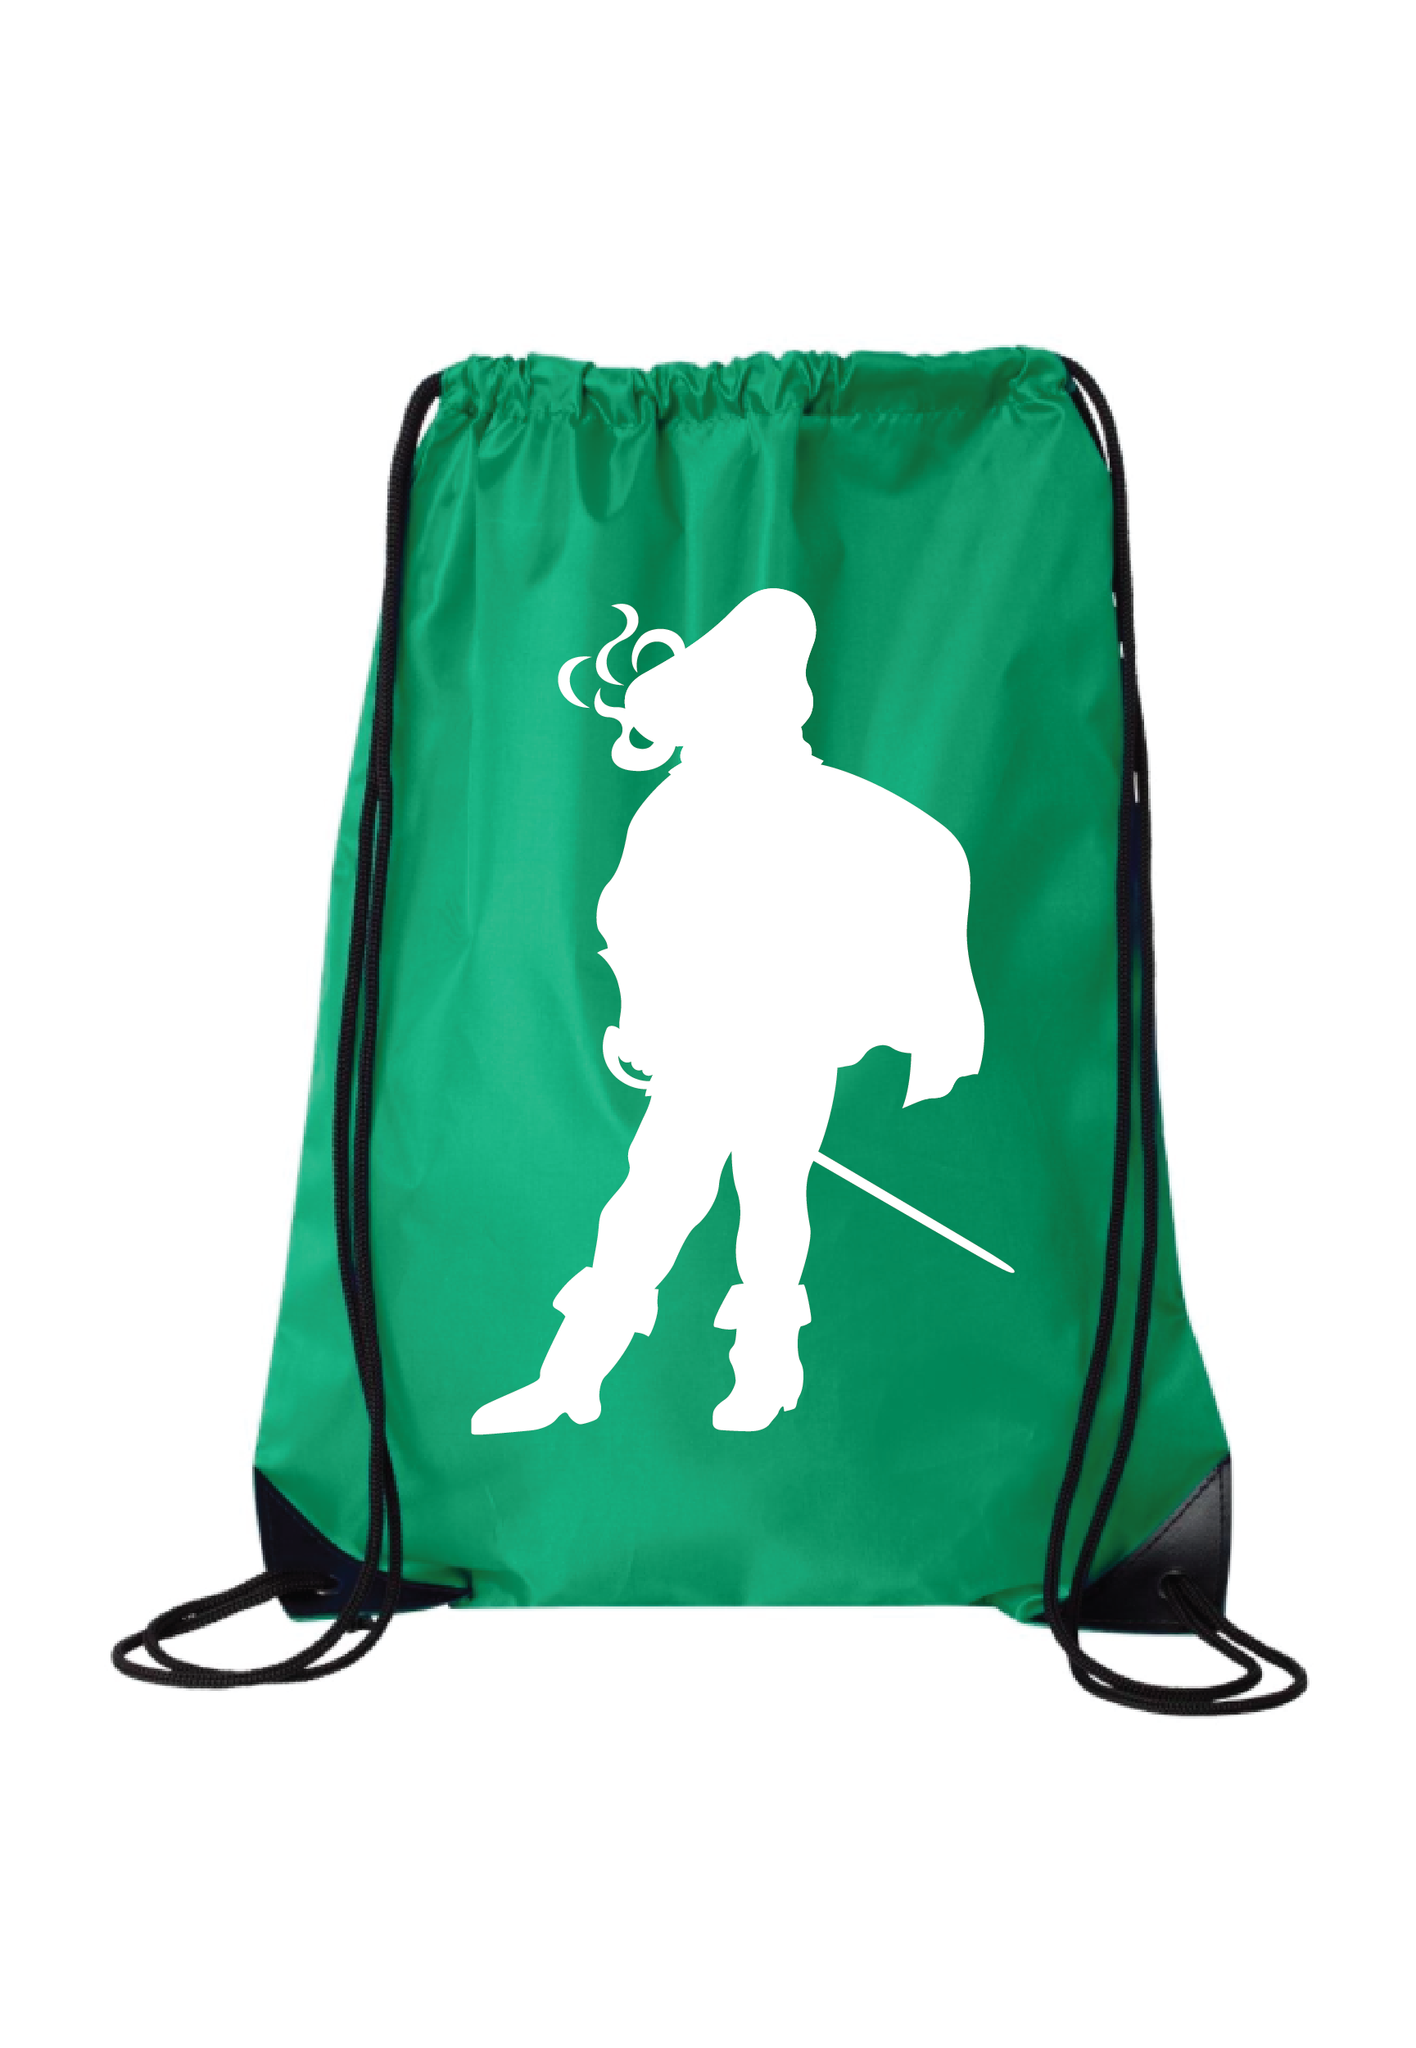 Standing Man Backpack